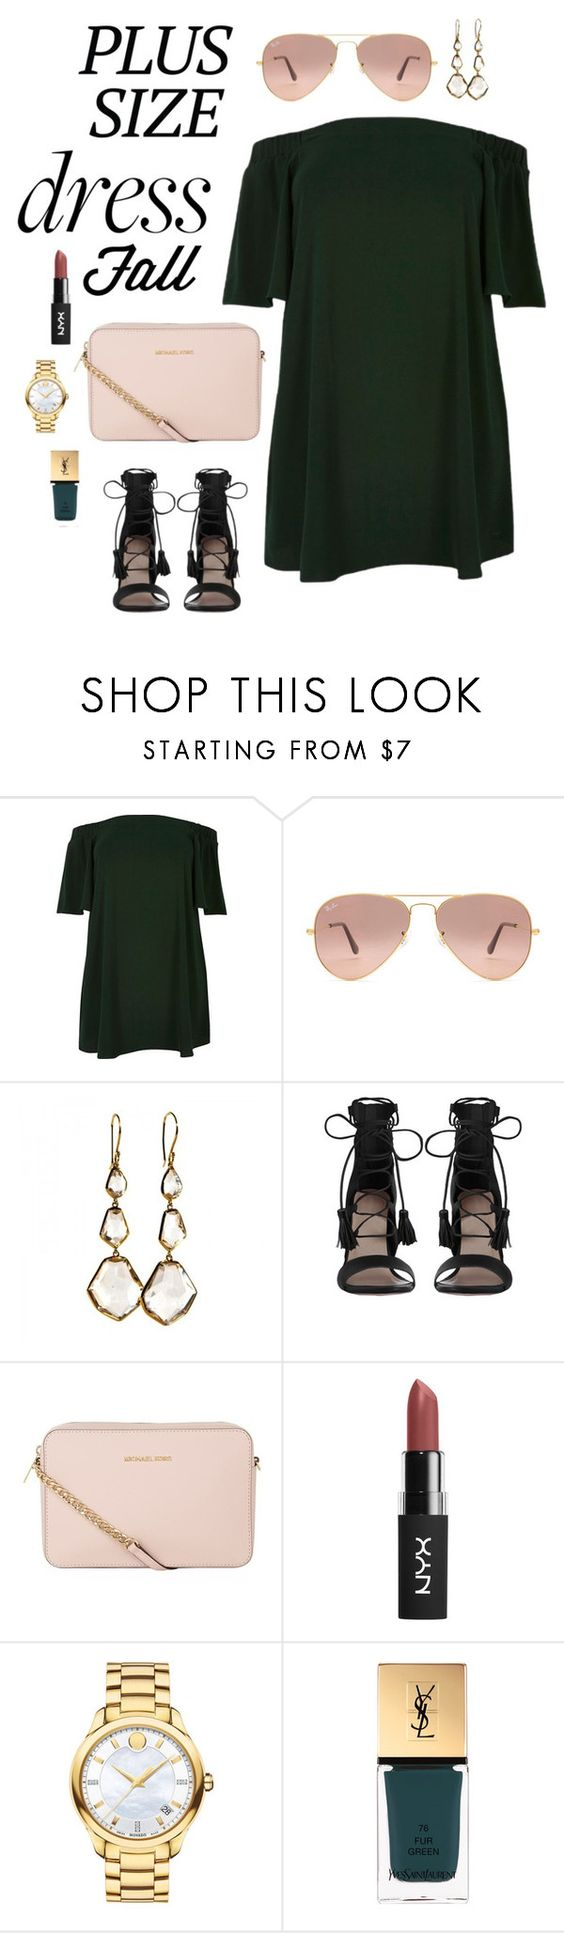 """pinkgreen #plussizedress"" by prettyrize ❤ liked on Polyvore featuring River Island, Ray-Ban, Ippolita, Zimmermann, MICHAEL Michael Kors, Movado, Yves Saint Laurent and plussizedress"